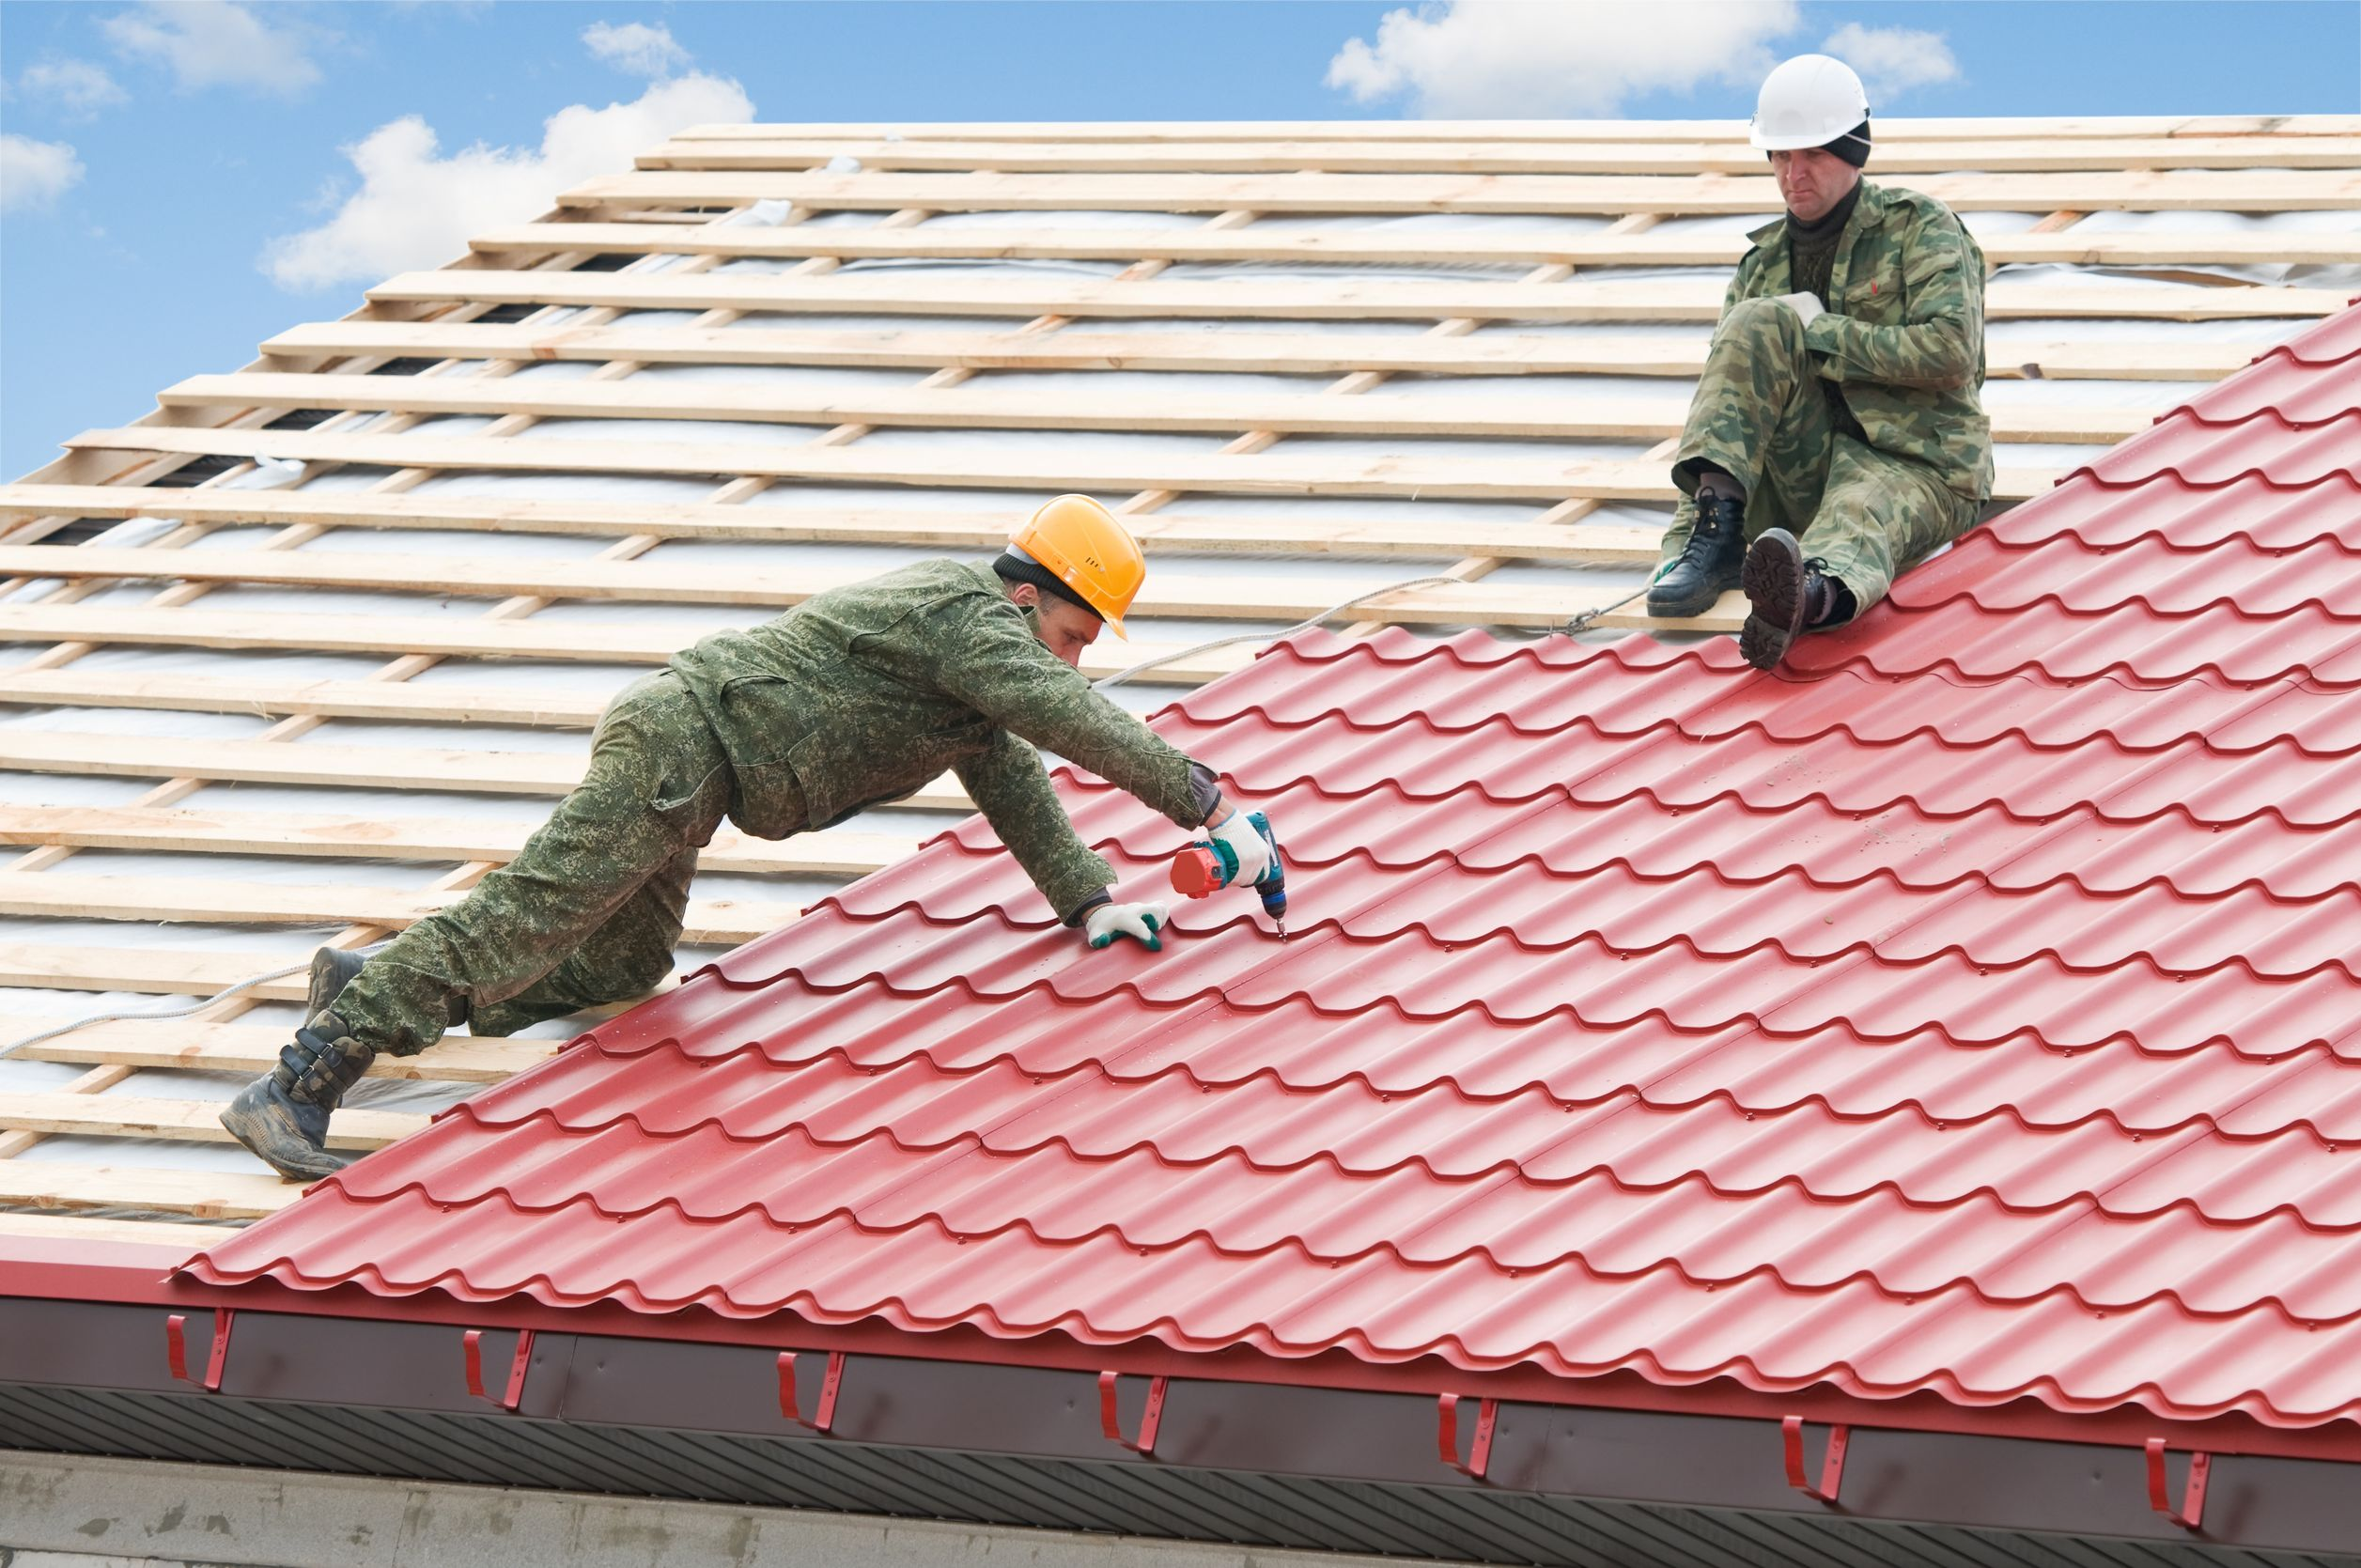 Materials used for Flat Roofing